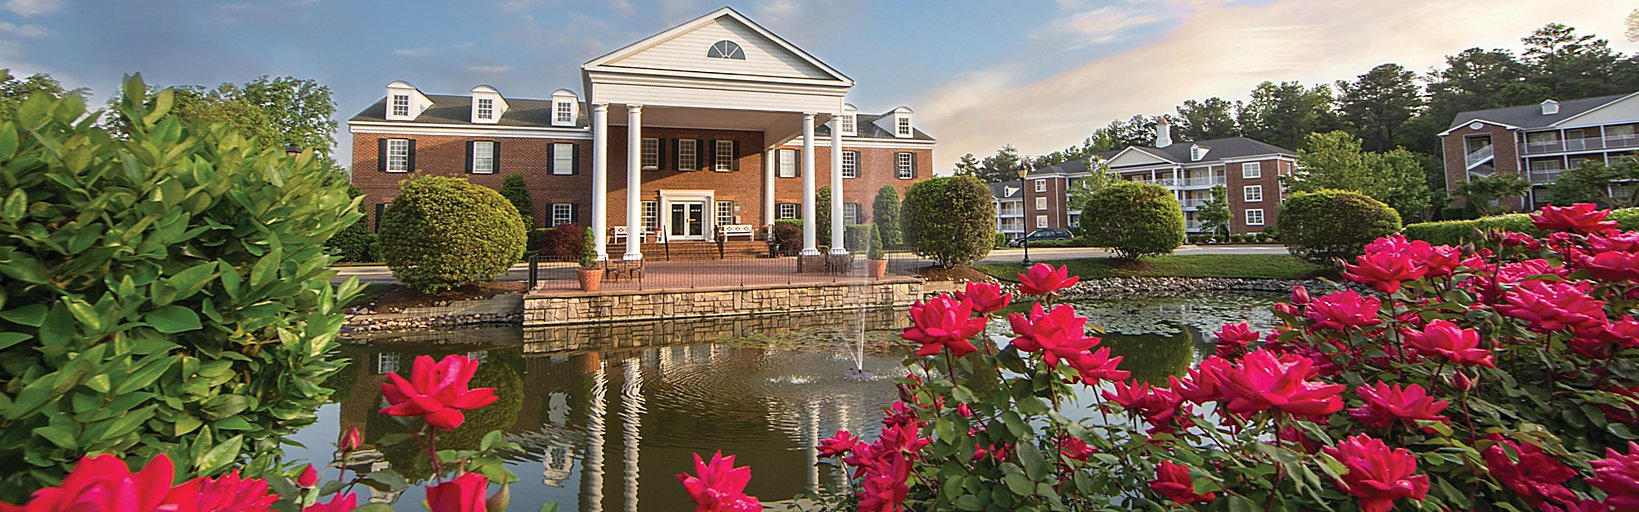 e8191e475 Welcome to Holiday Inn Club Vacations Williamsburg Resort! Bright scenery  surrounds the main building ...